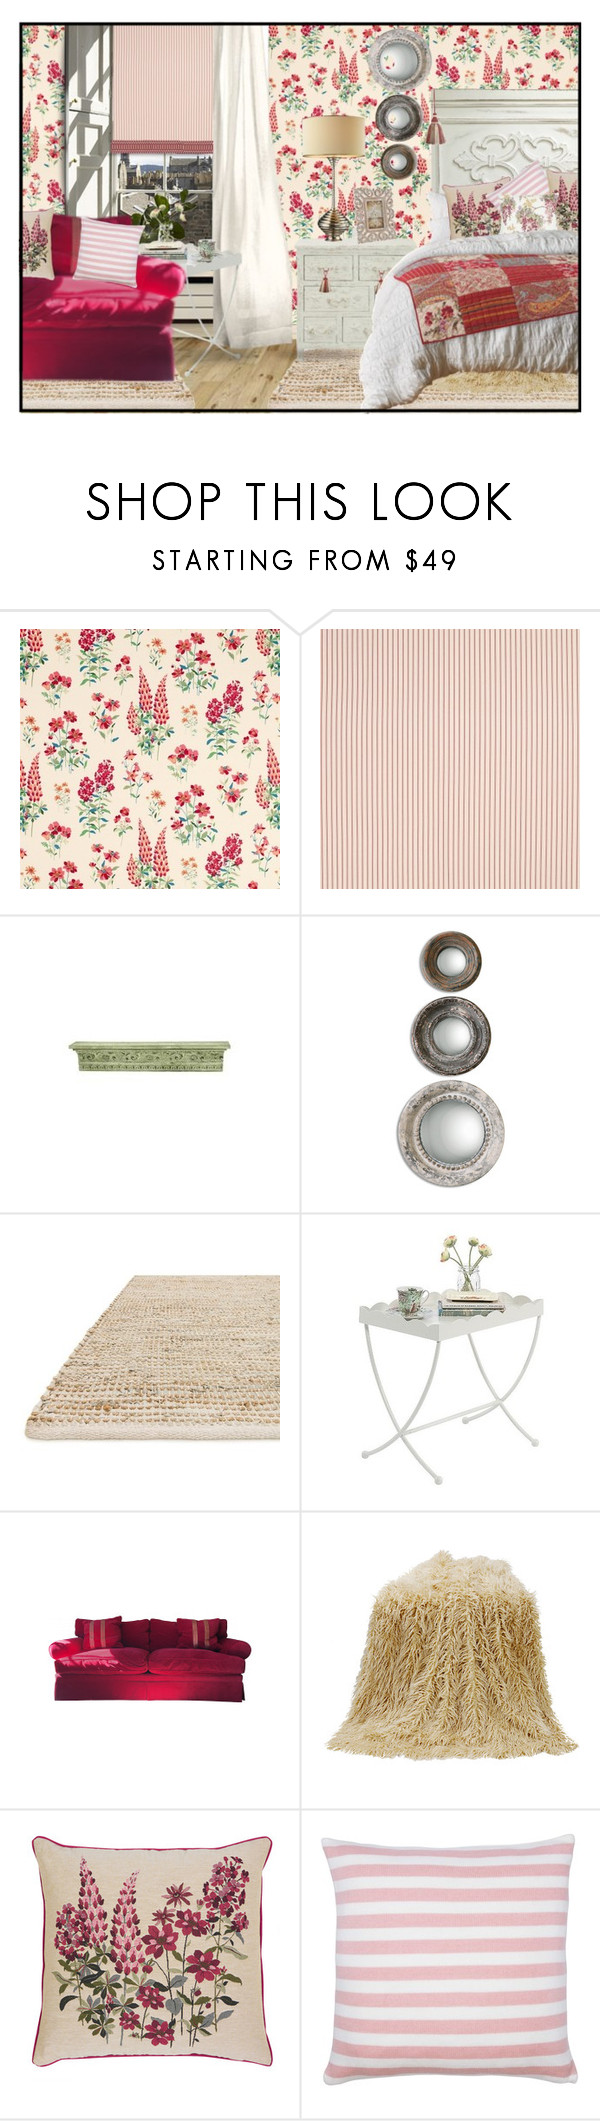 """Sin título #715"" by yblacasa ❤ liked on Polyvore featuring interior, interiors, interior design, home, home decor, interior decorating, Tela Beauty Organics, WALL, Loloi Rugs and Sauder"